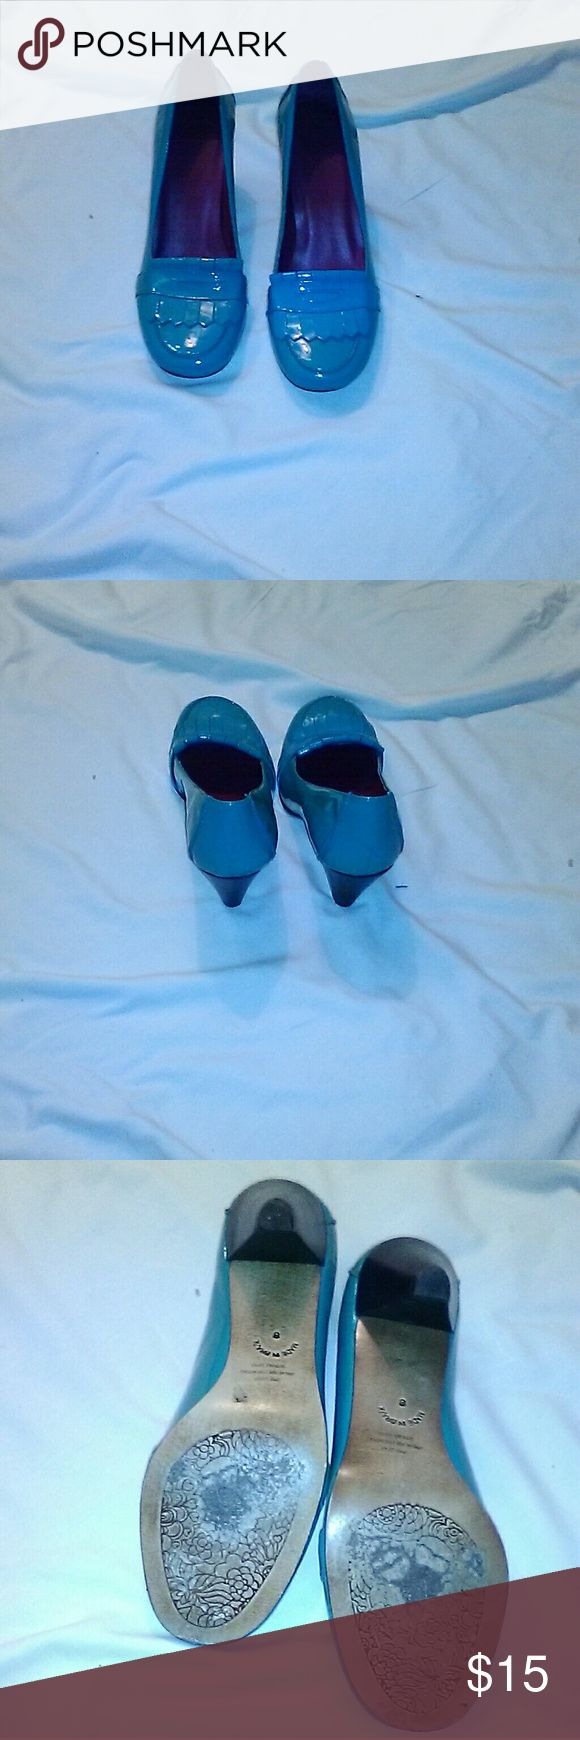 GAP BLUE LOAFERS WITH 2 inch heels Blue Gap Loafer with a 2 inch in good natural wear shown in the pictures GAP Shoes Flats & Loafers